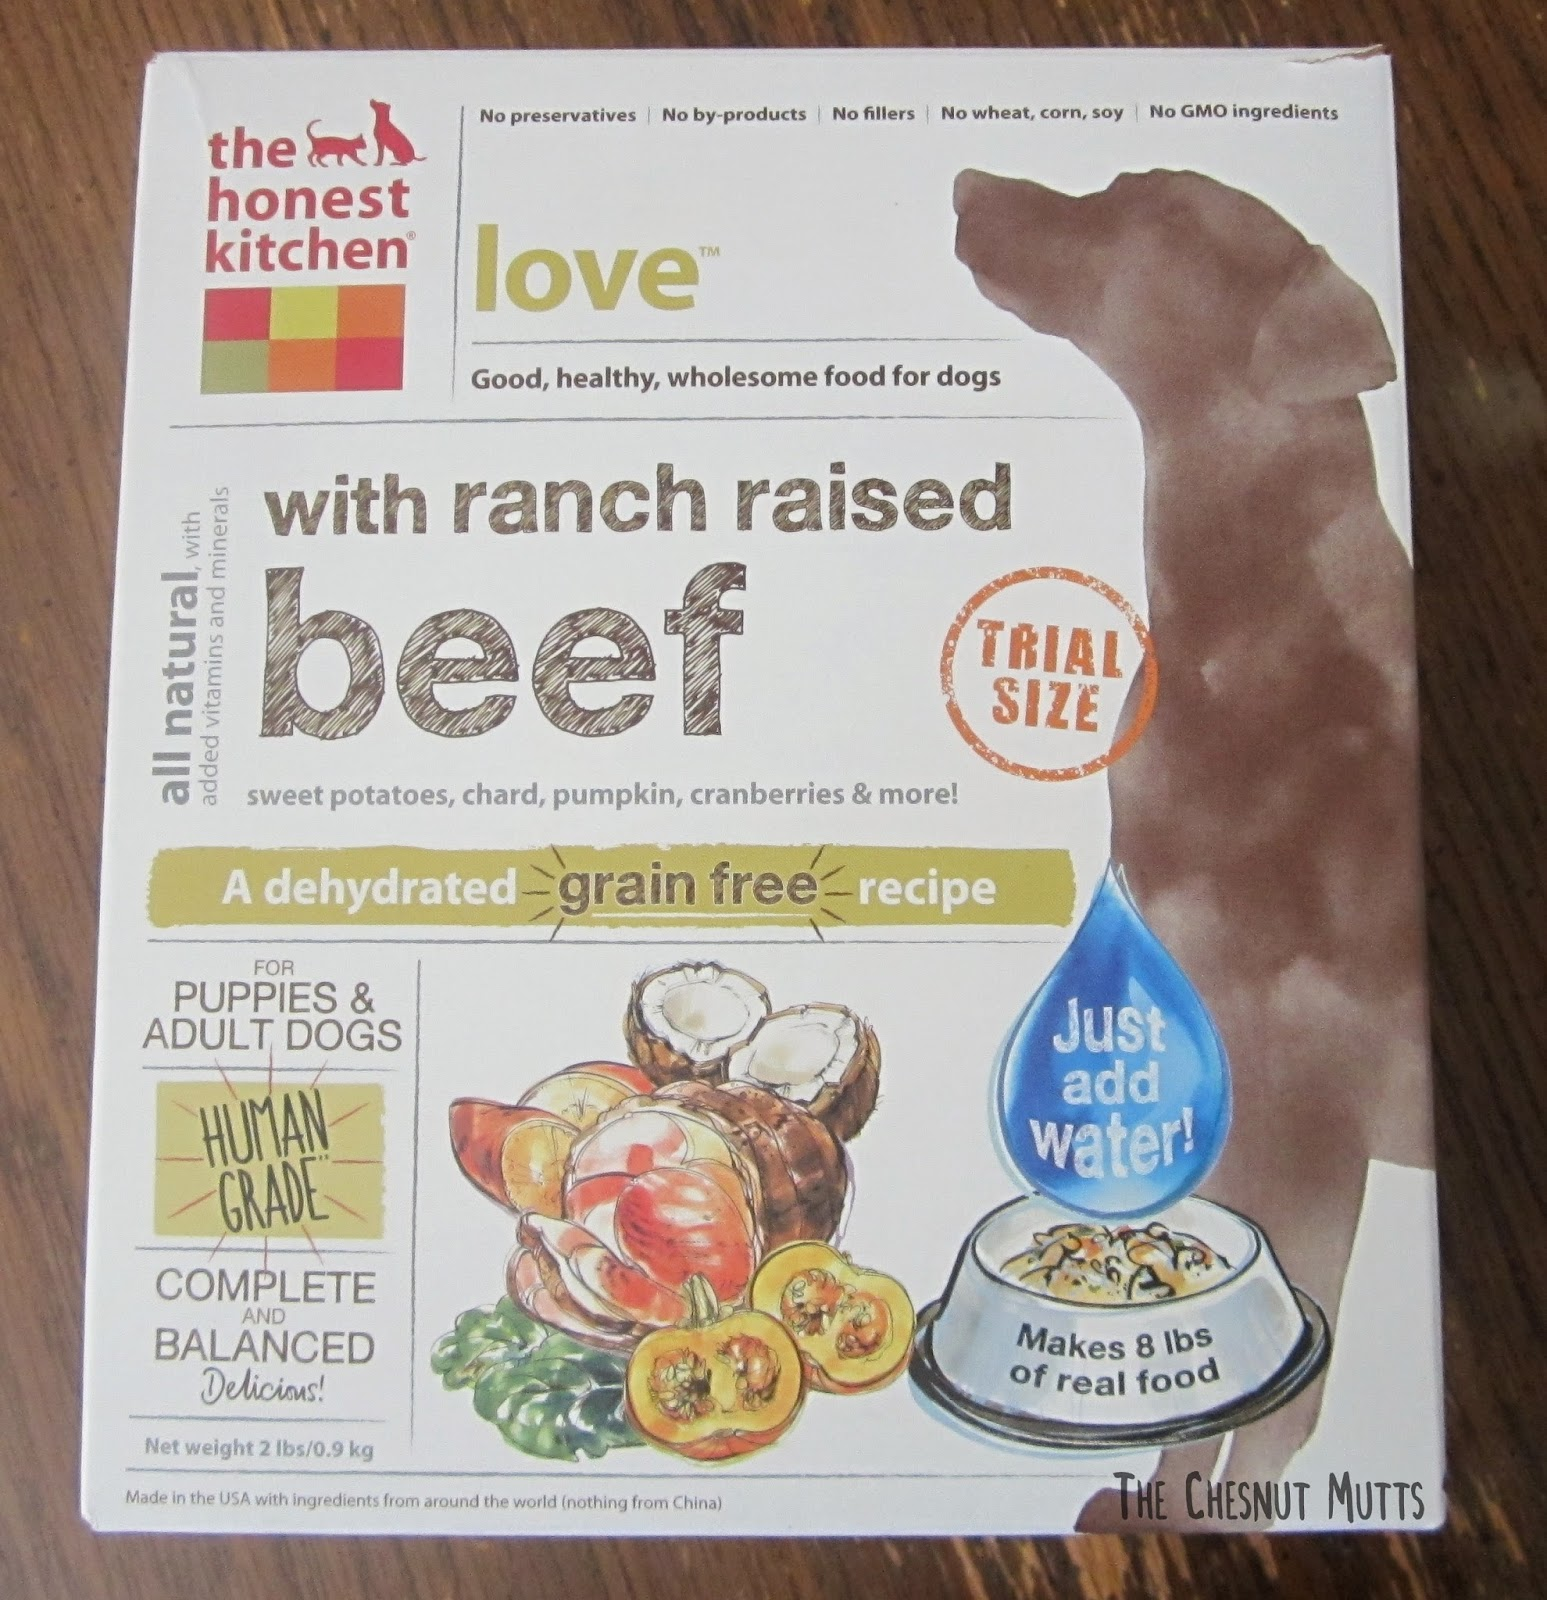 exceptional Is The Honest Kitchen Healthy For My Dog #8: The Honest Kitchen Love with ranch raised beef